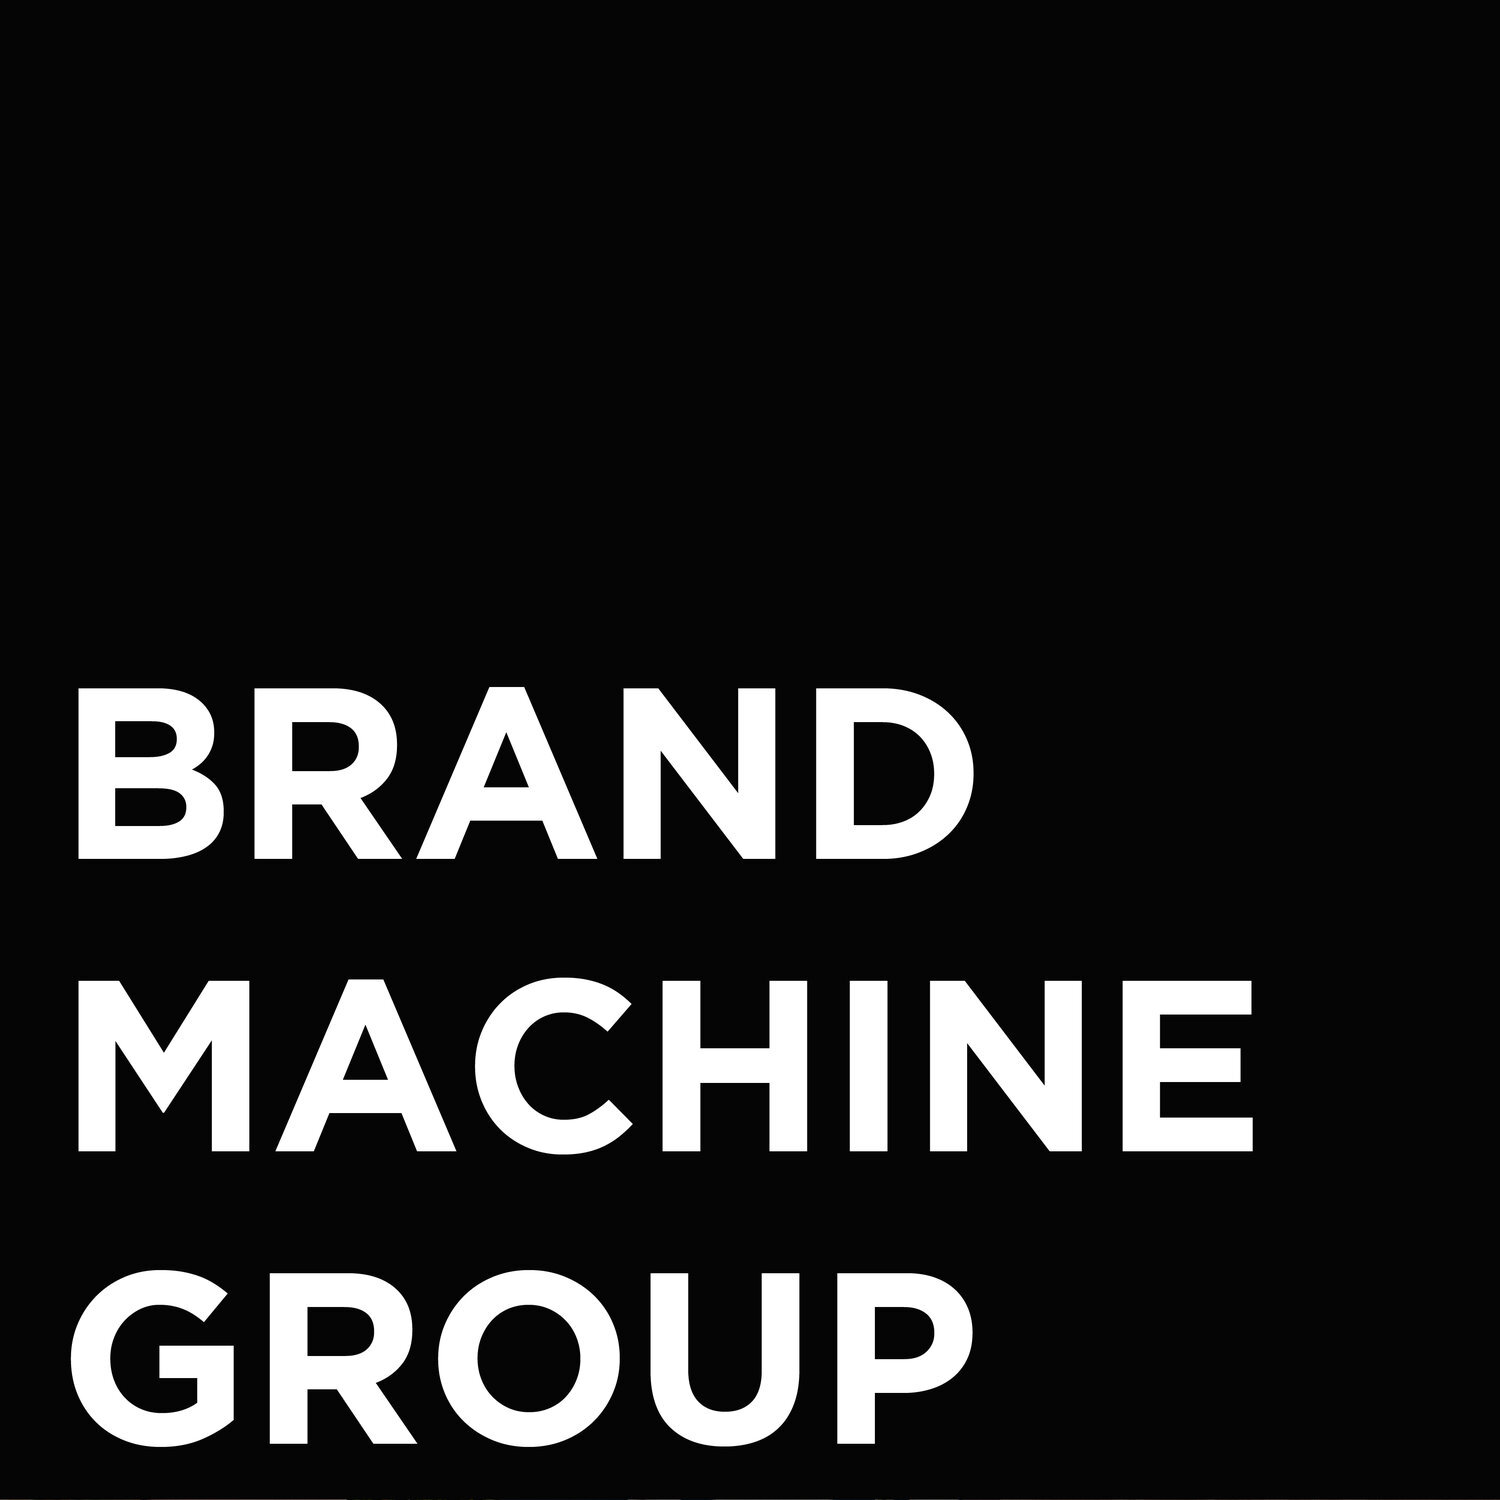 Brand Machine Group